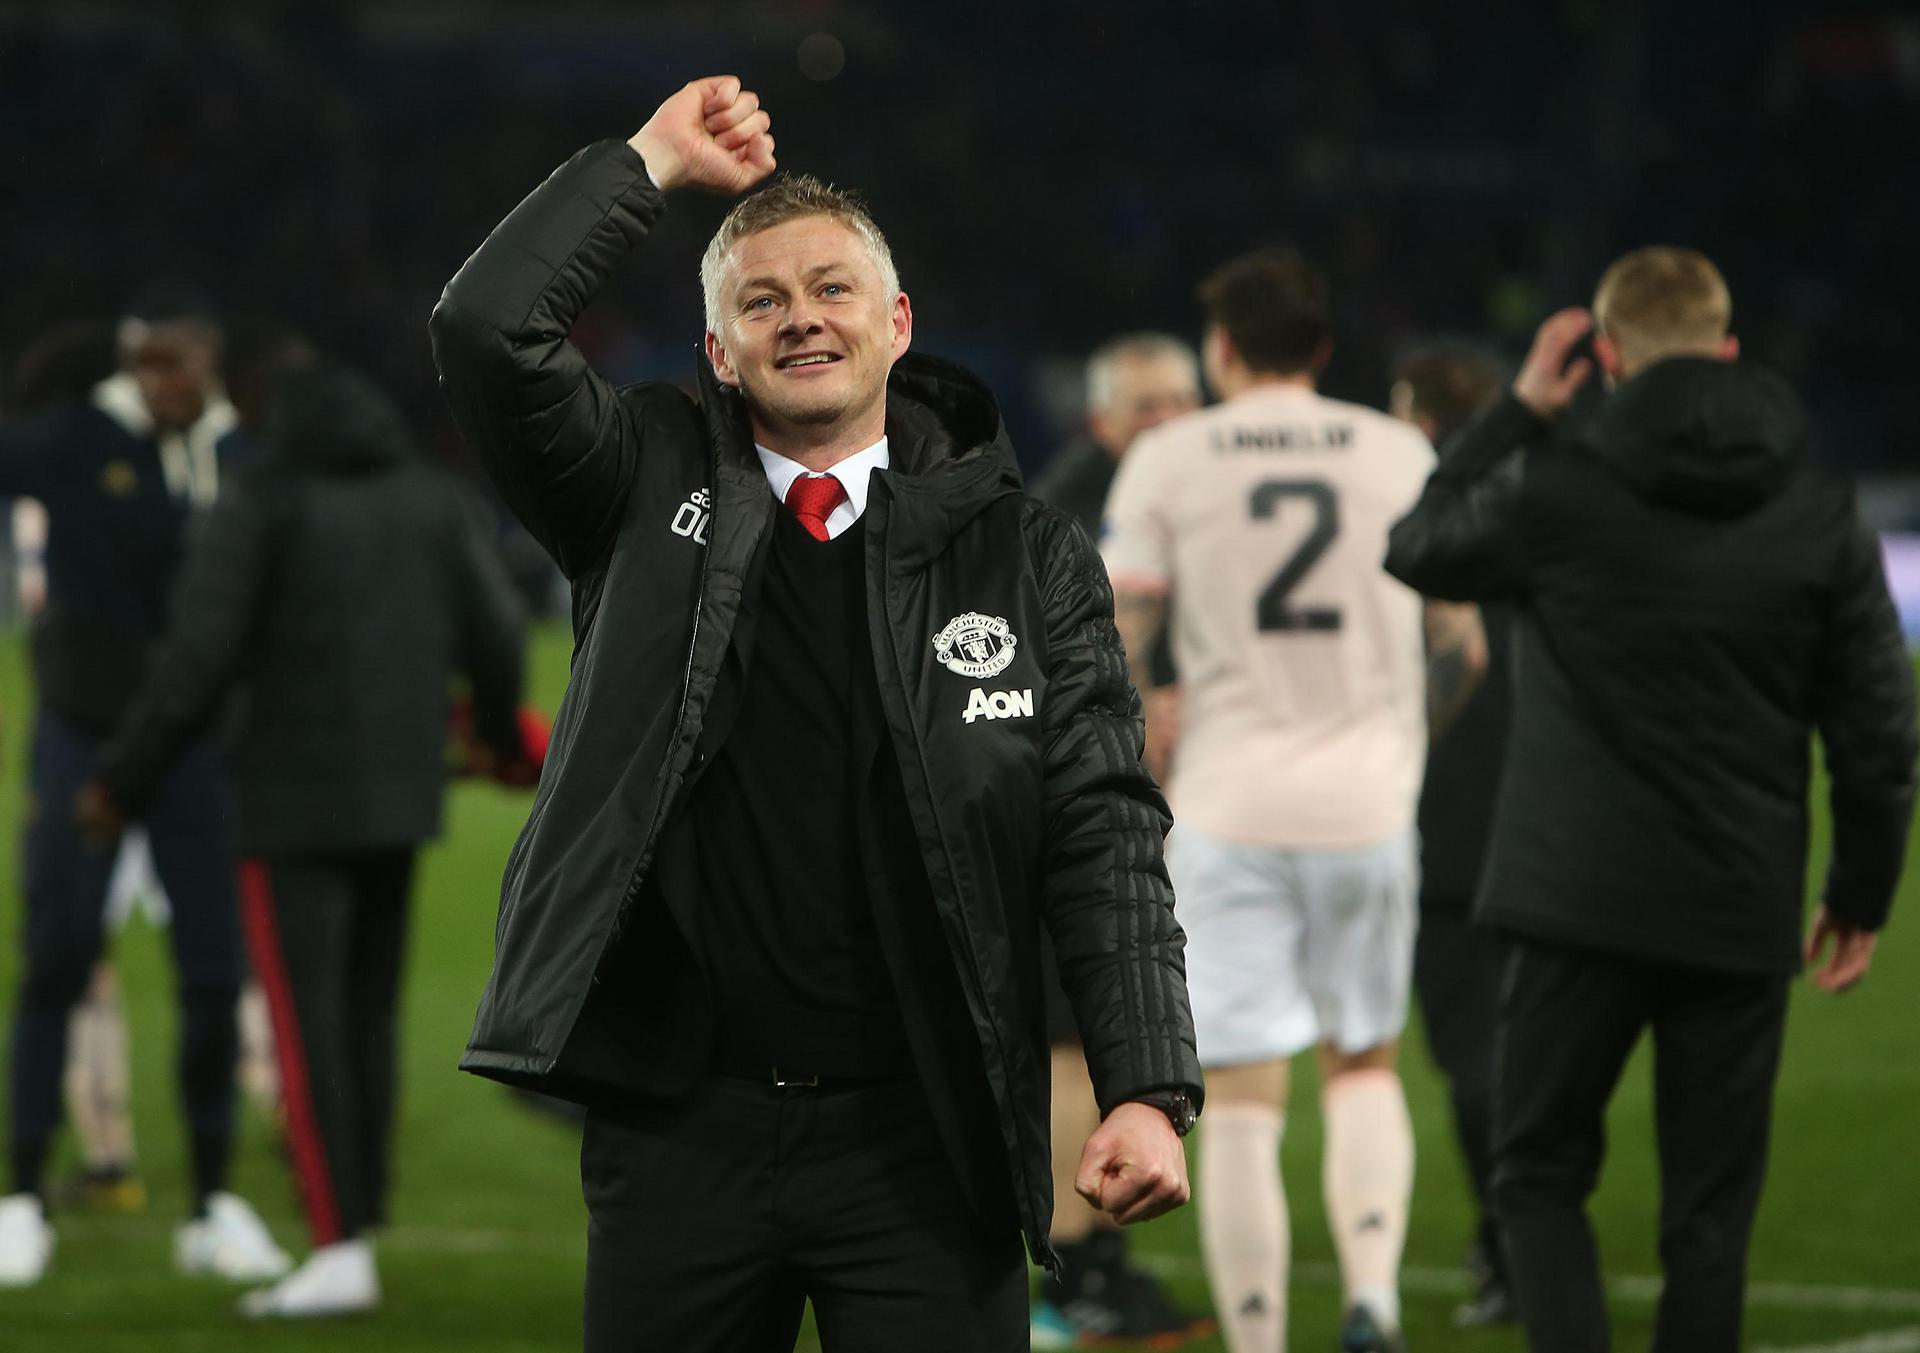 Ole Gunnar Solskjaer celebrates in Paris.